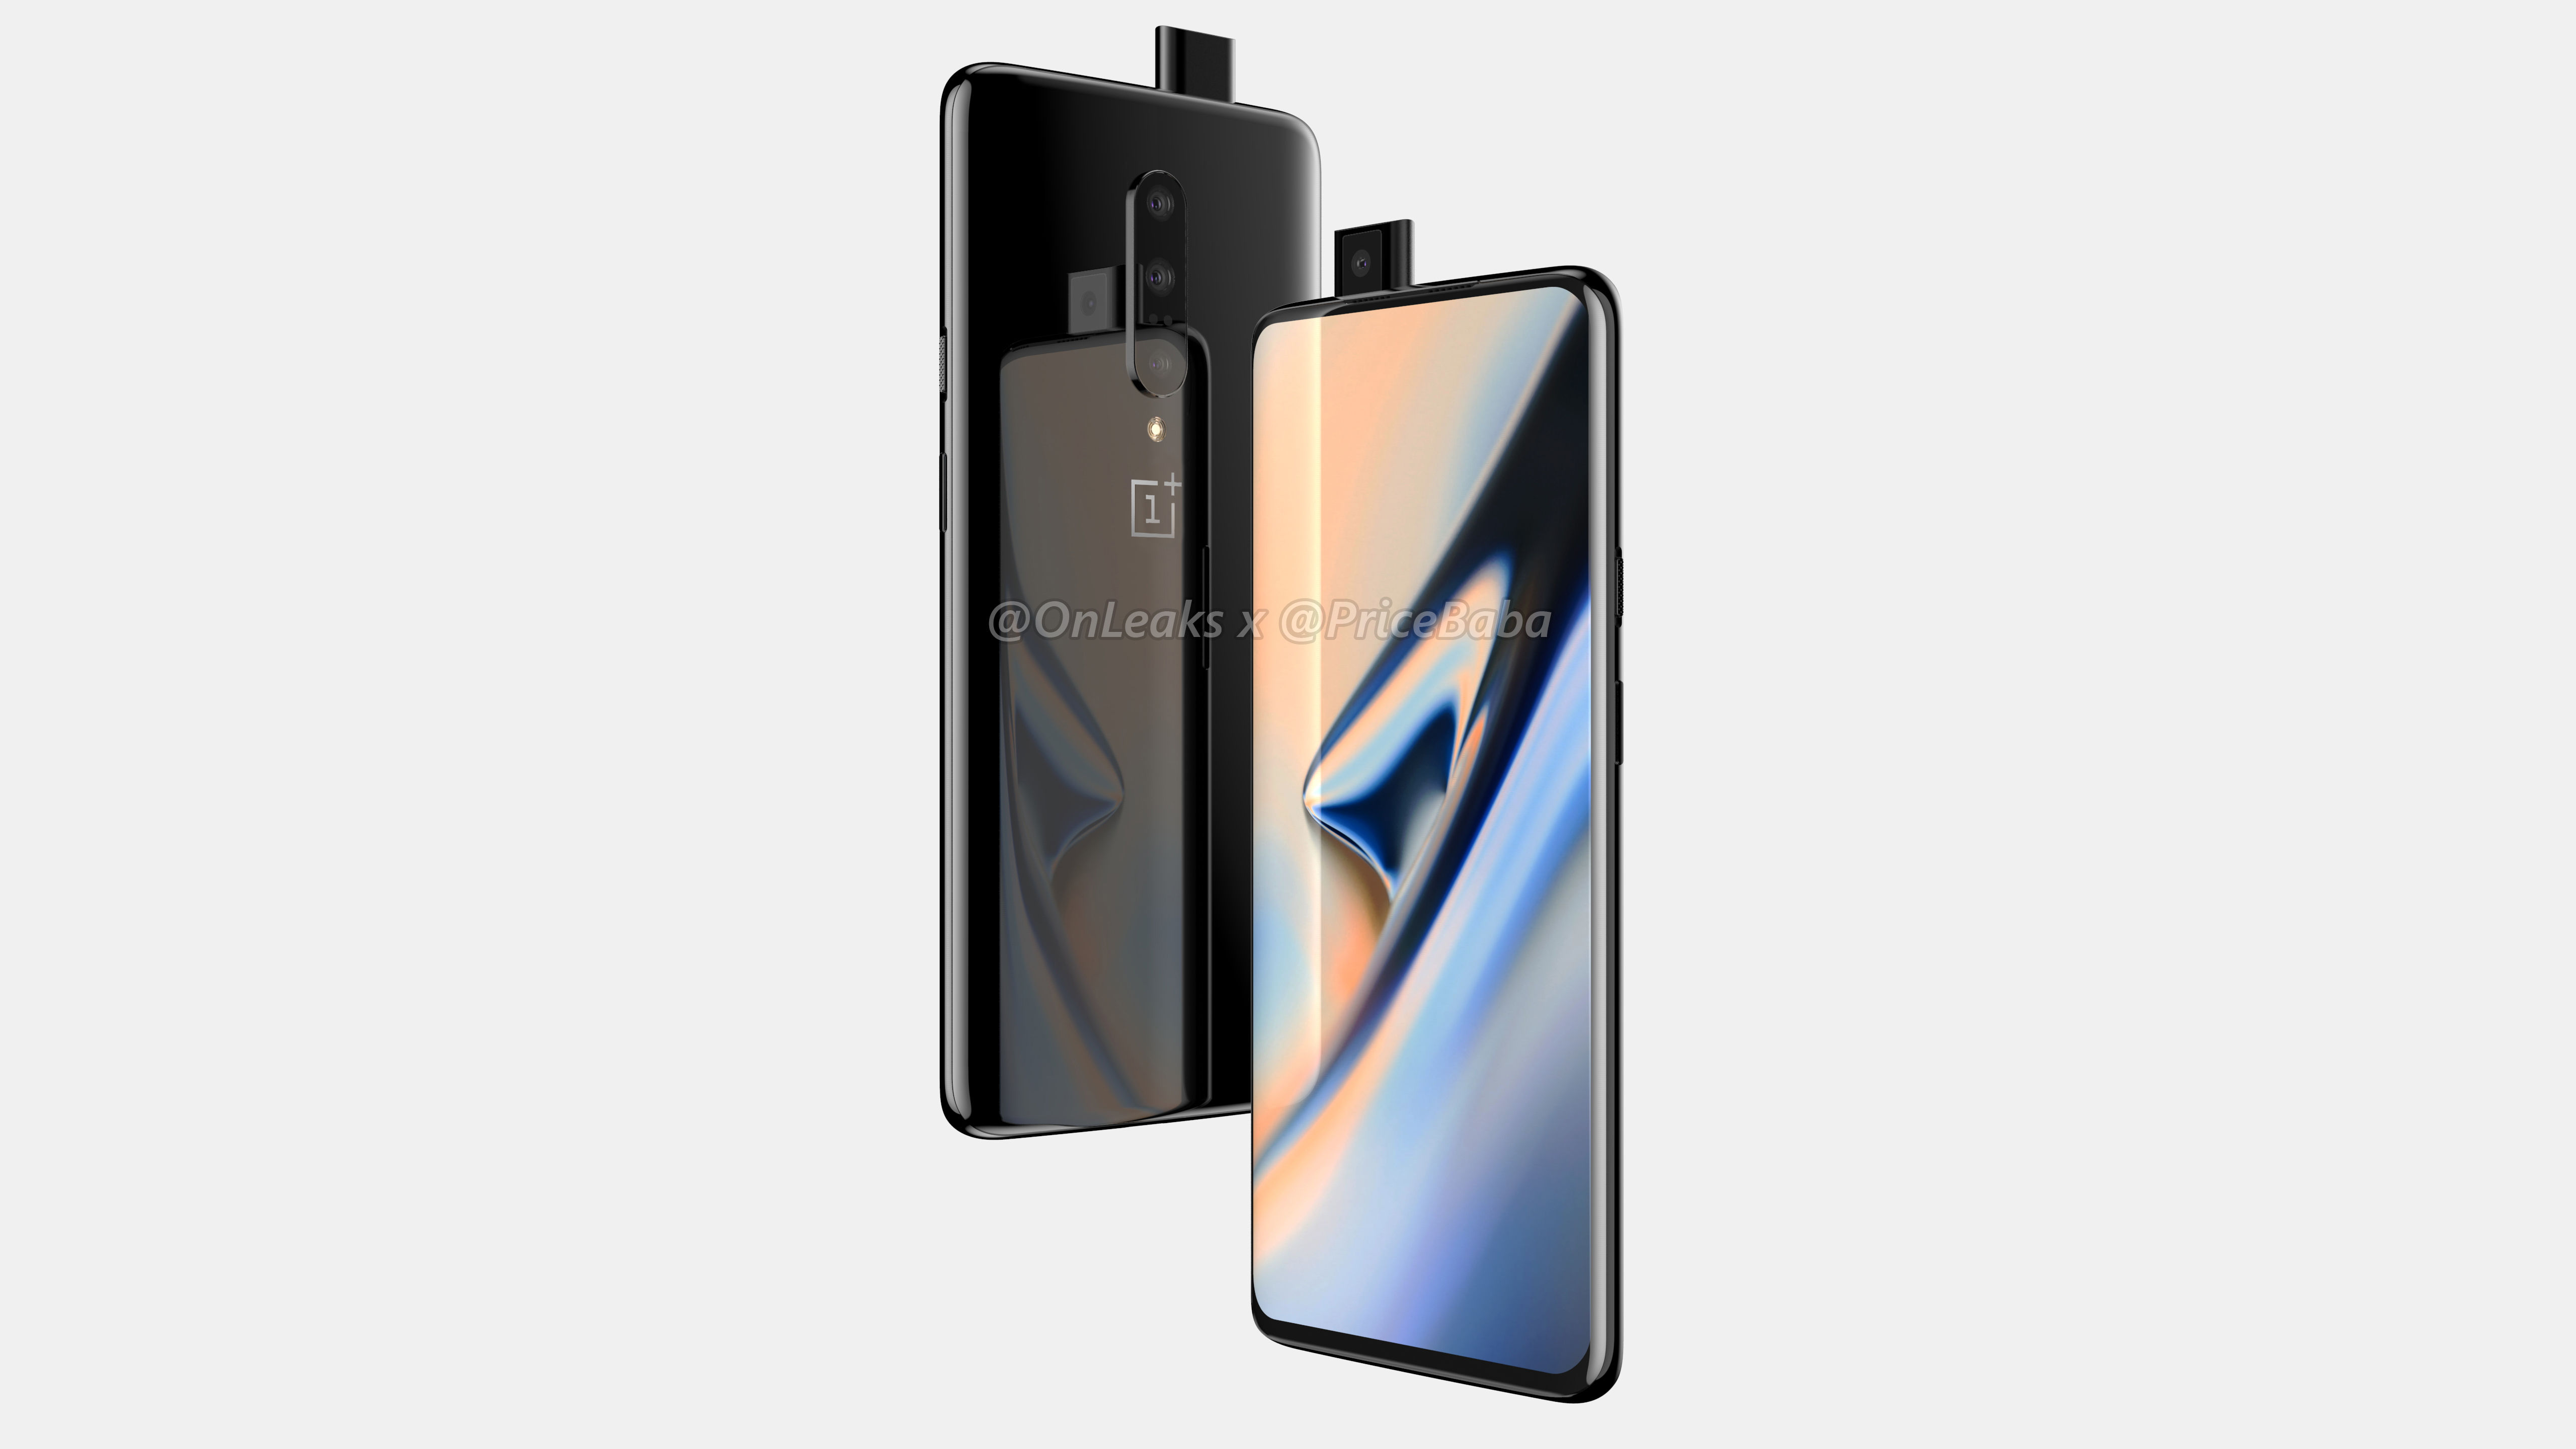 OnePlus 7 Renders Leak Show a Pop-up Selfie Camera With No 3.5mm Audio Jack in Sight